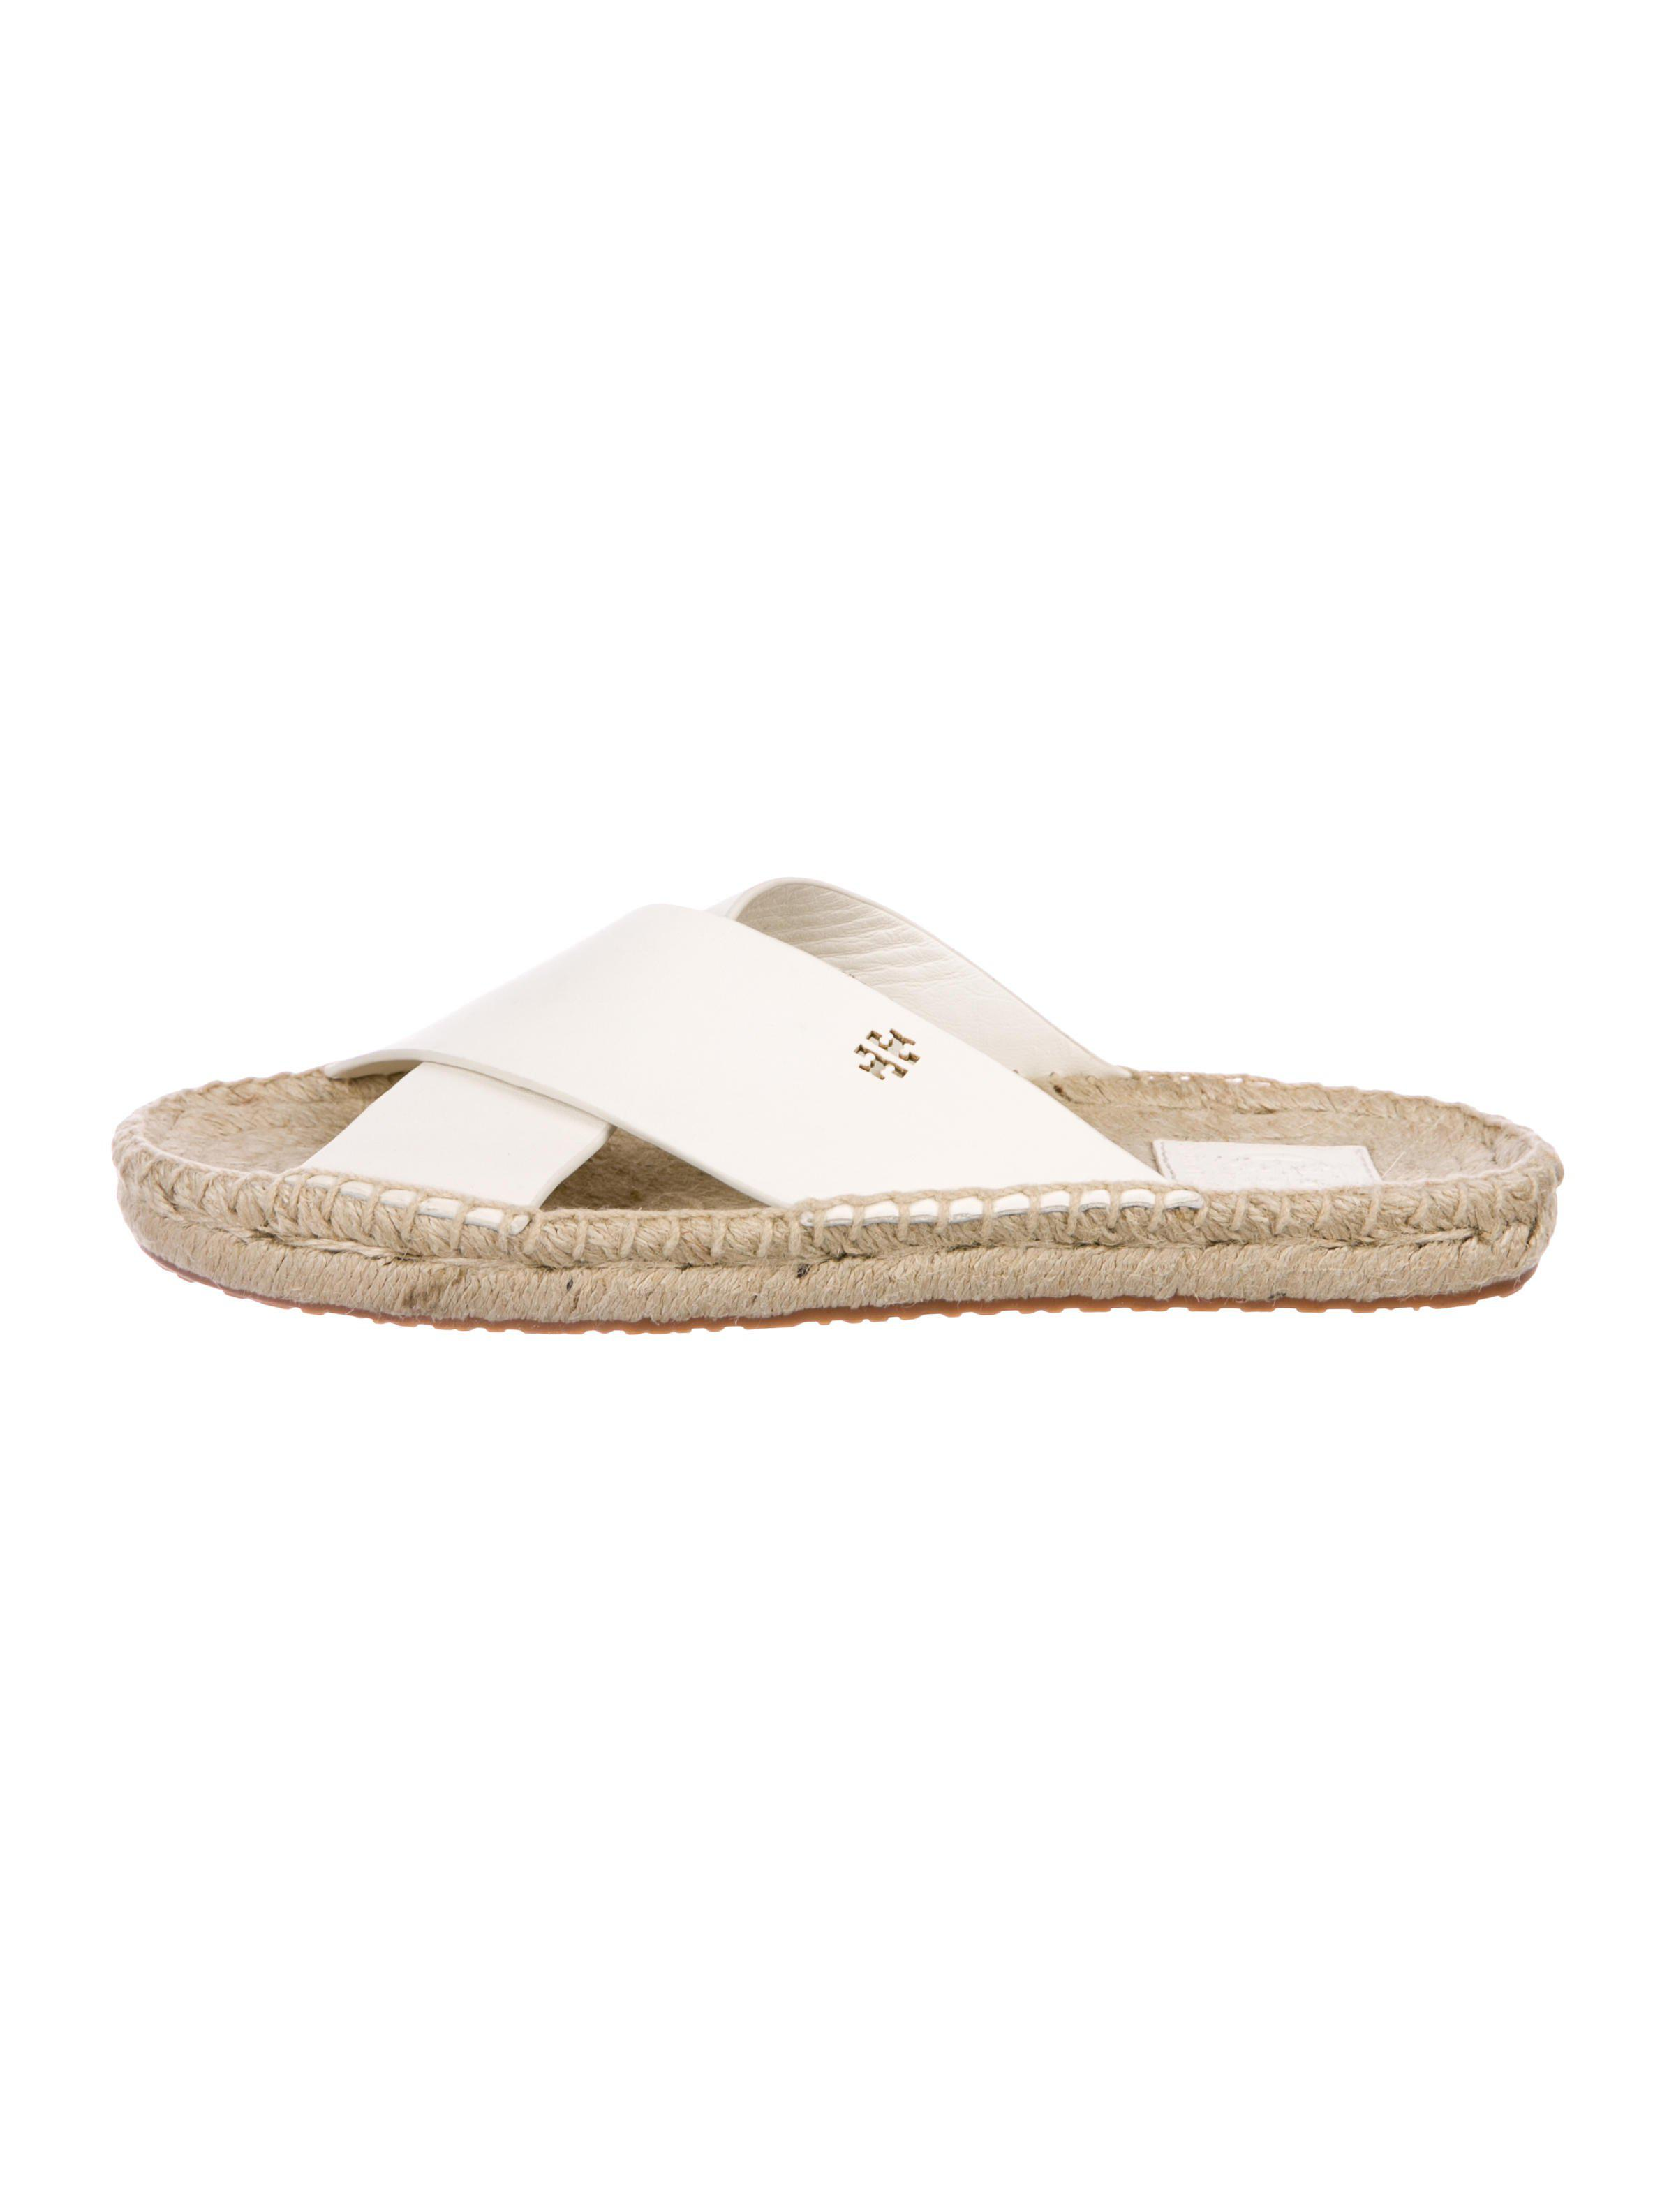 d40ef08a7a10 Lyst - Tory Burch Leather Espadrille Sandals in White